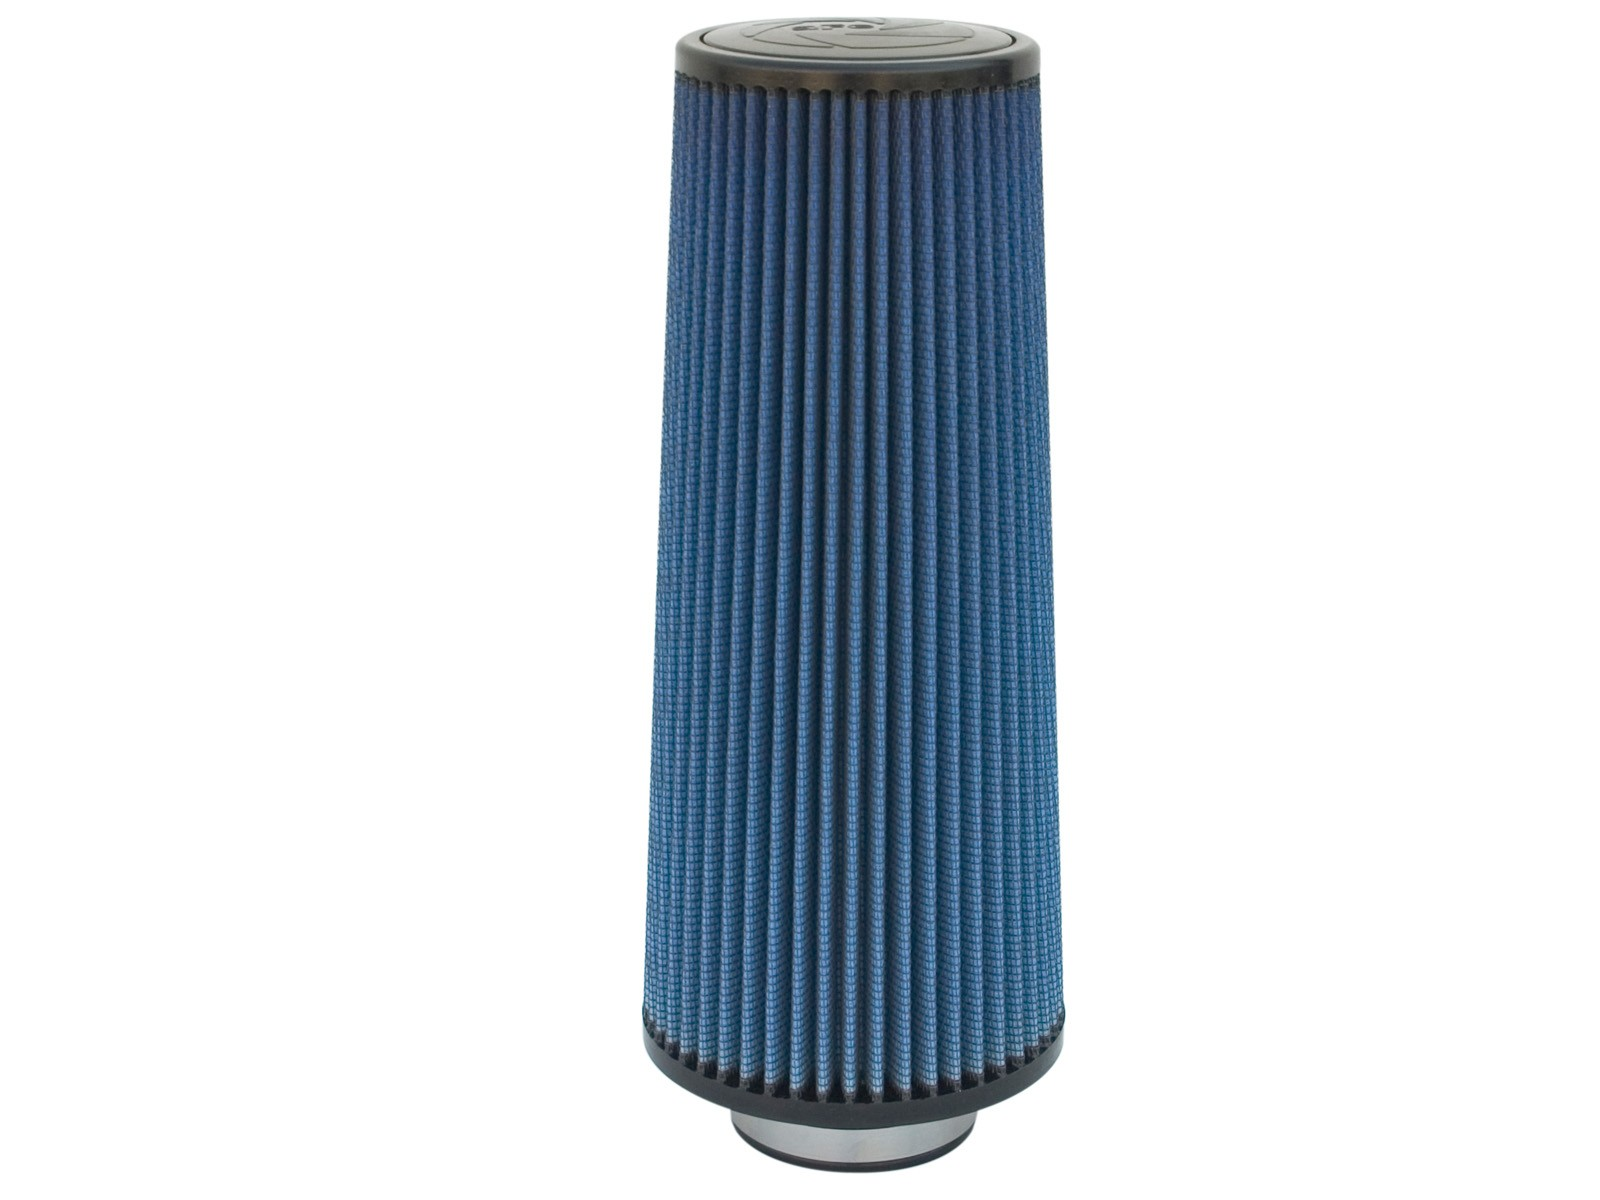 aFe POWER 24-30031 Magnum FLOW Pro 5R Air Filter